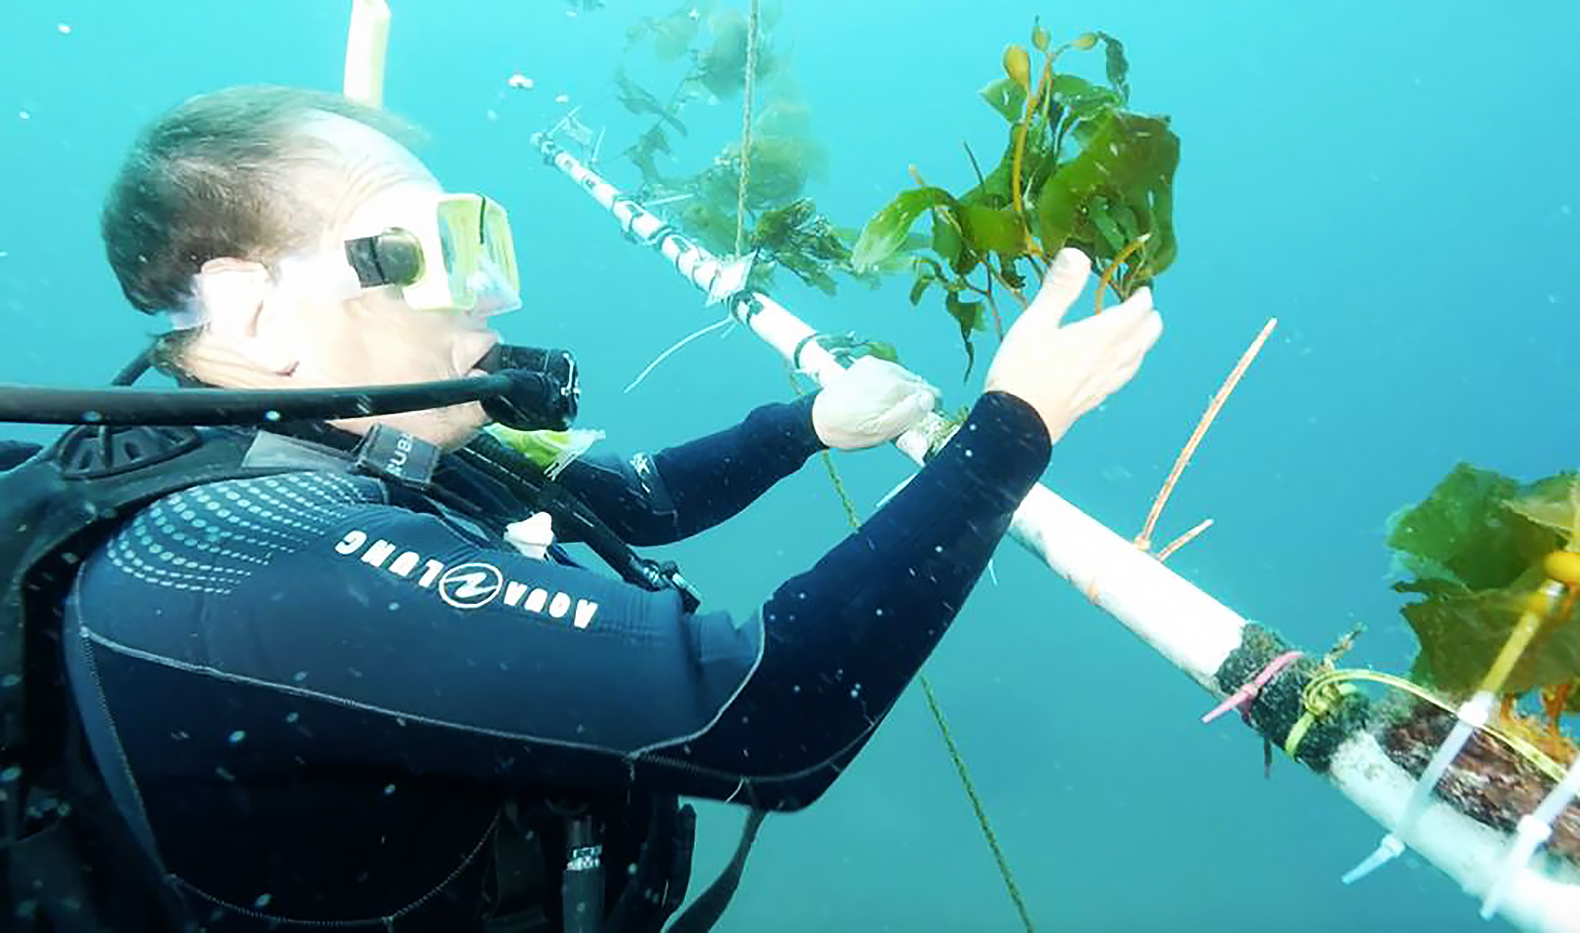 Startup is developing kelp farms in the open ocean to make carbon-neutral biofuel